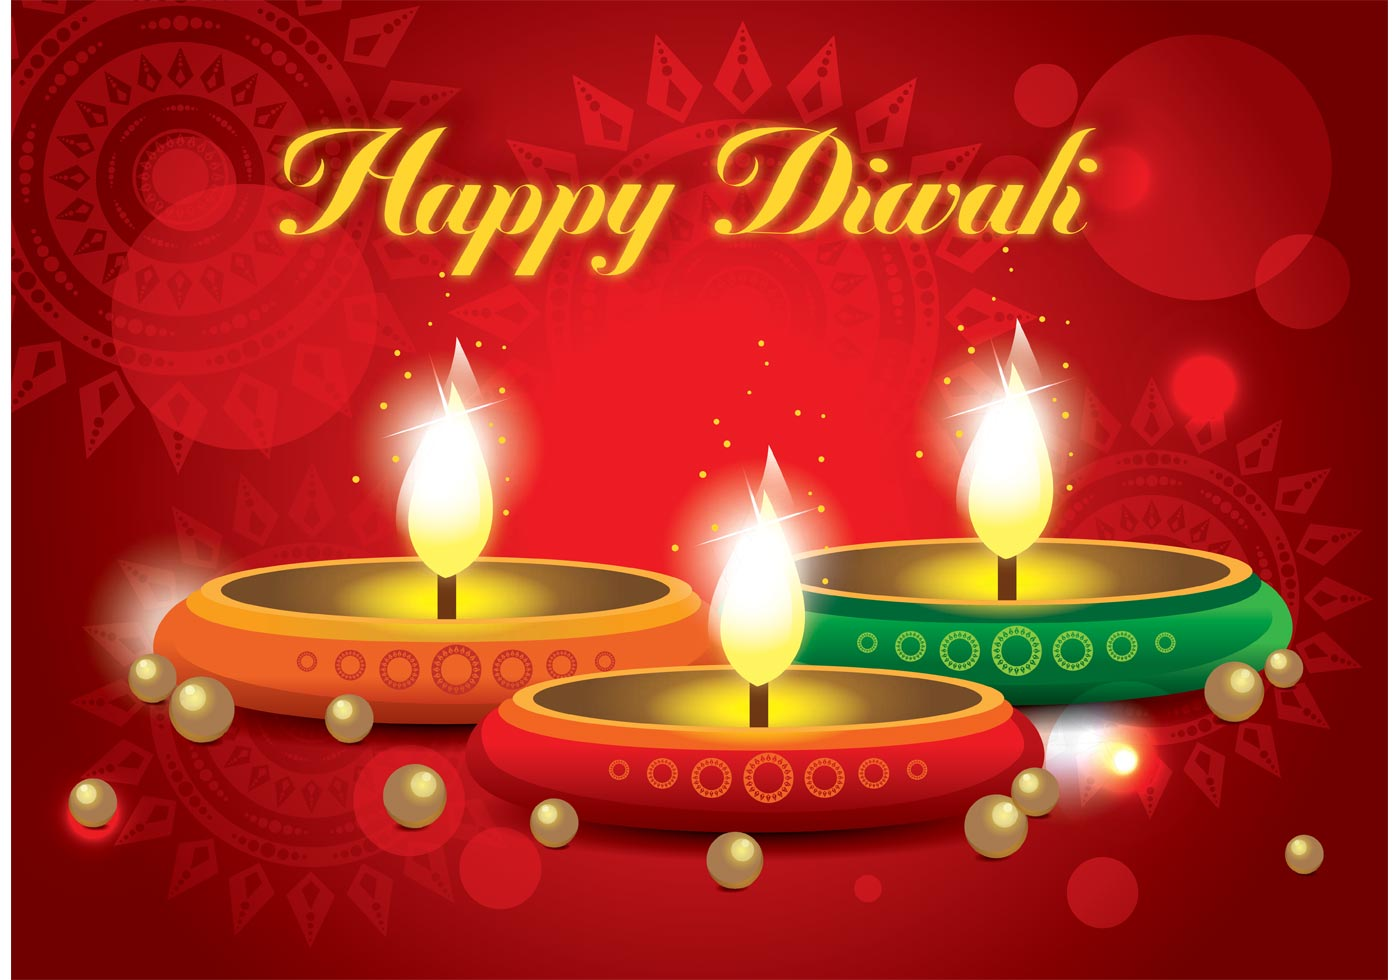 Happy Diwali Vector - Download Free Vector Art, Stock ...